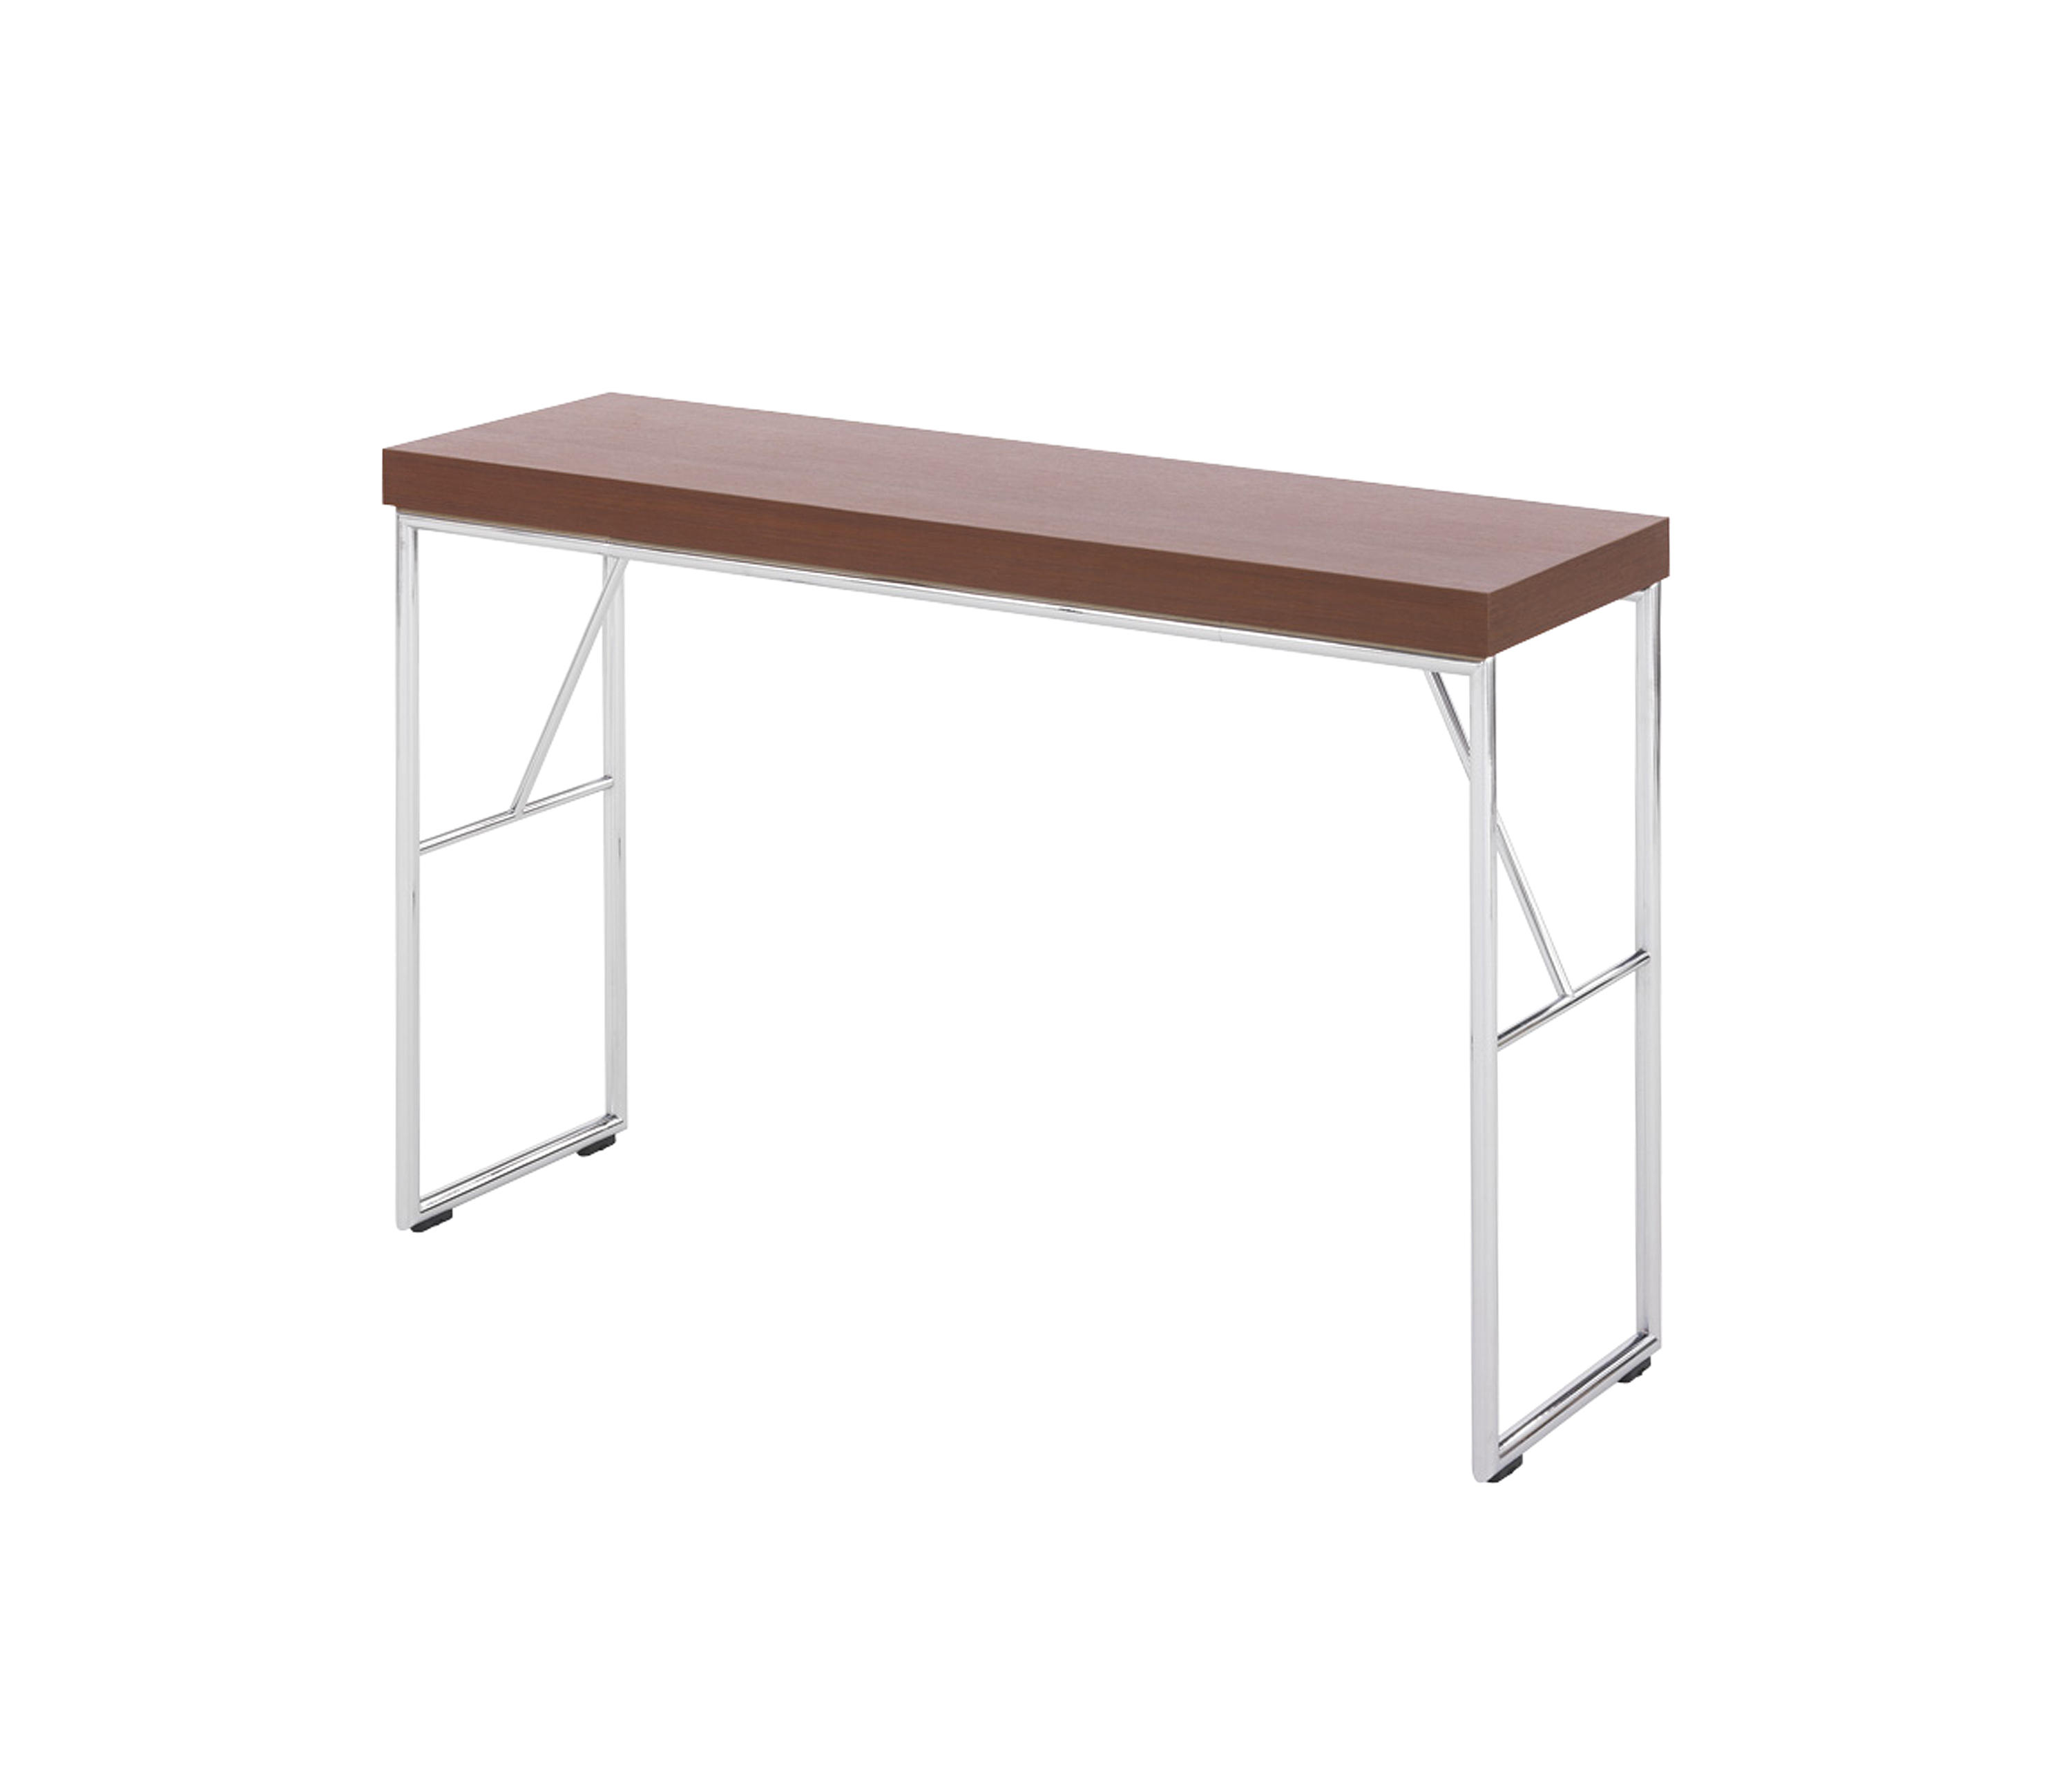 PAUSE - Service tables / carts from Allermuir Limited | Architonic